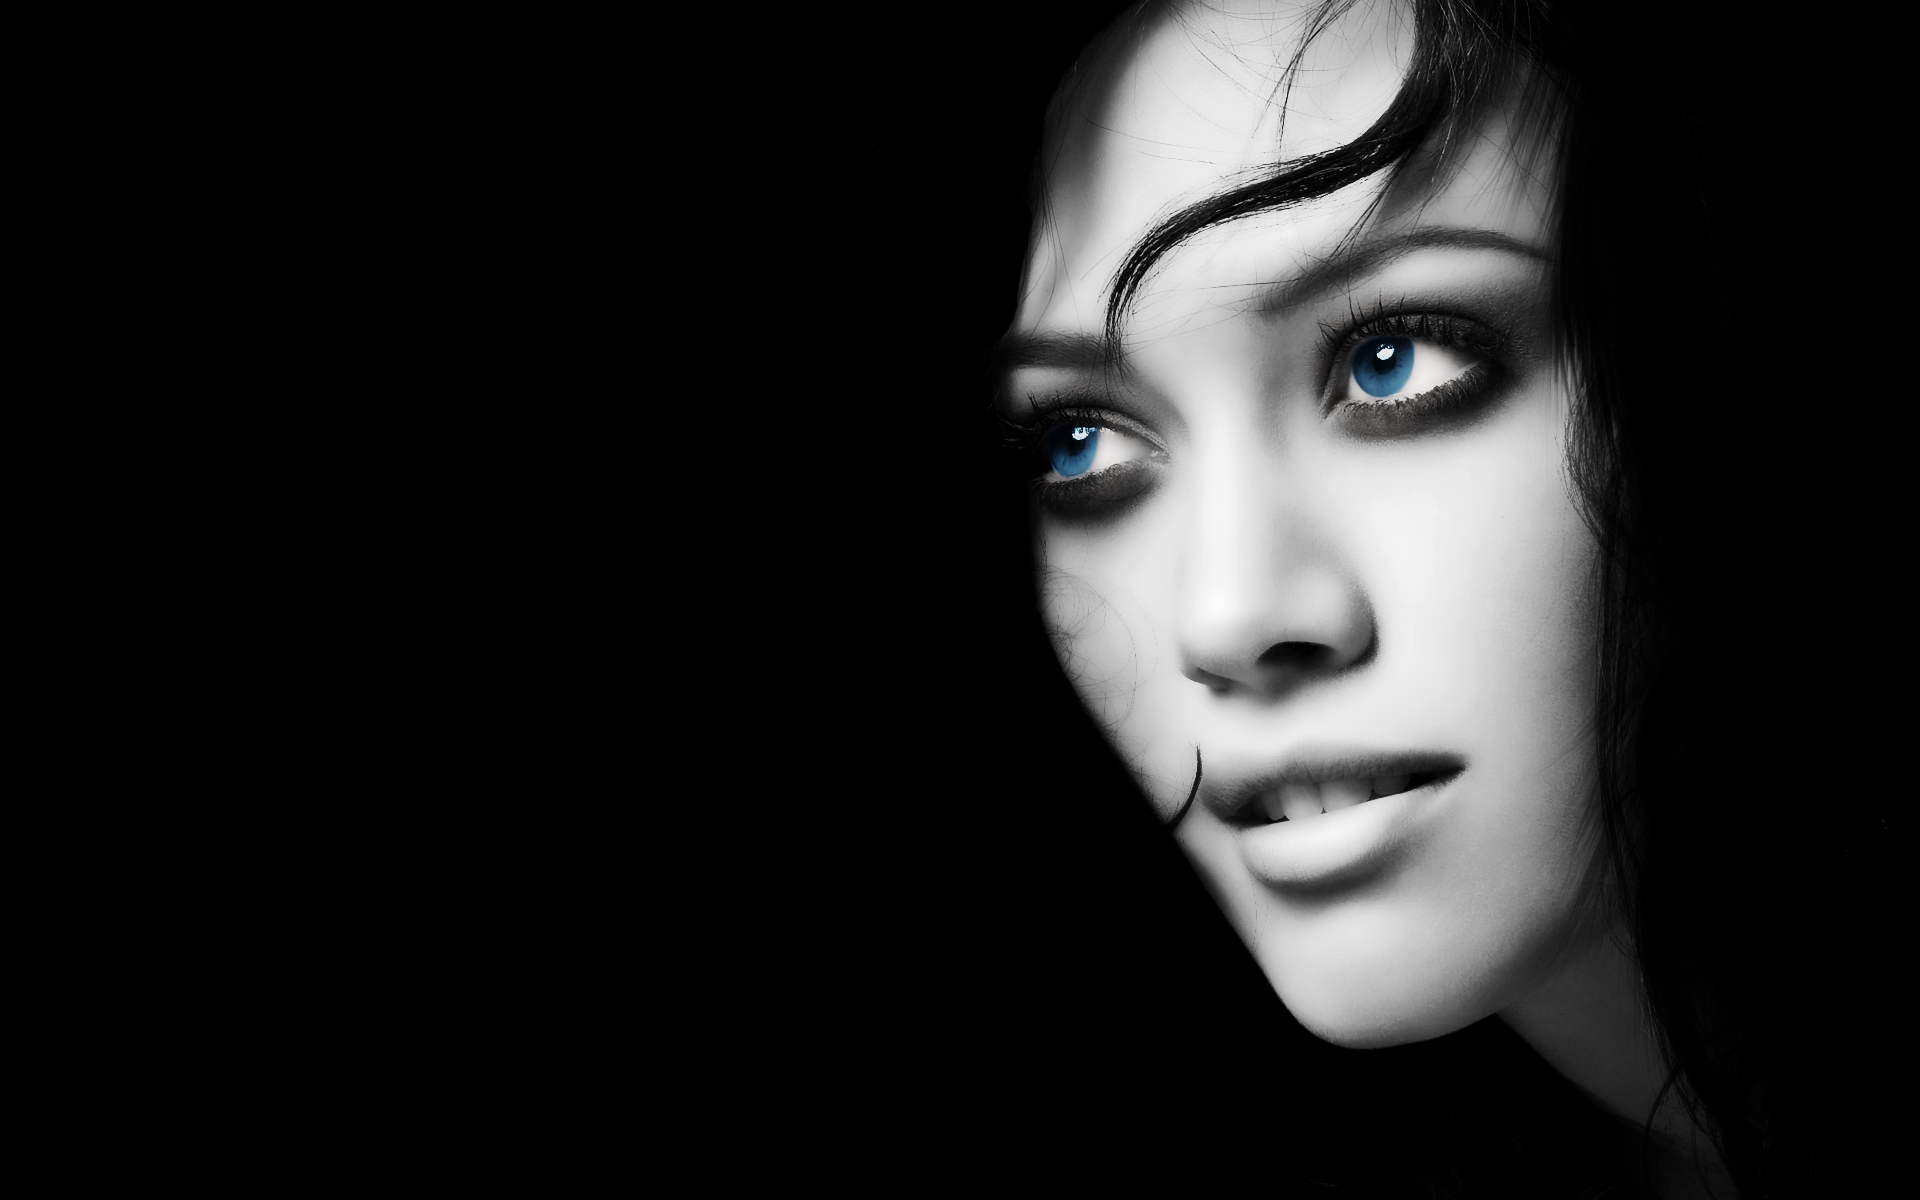 50 Hd And Qhd Beautiful Black And White Wallpapers: Black Girls Wallpapers (48 Wallpapers)